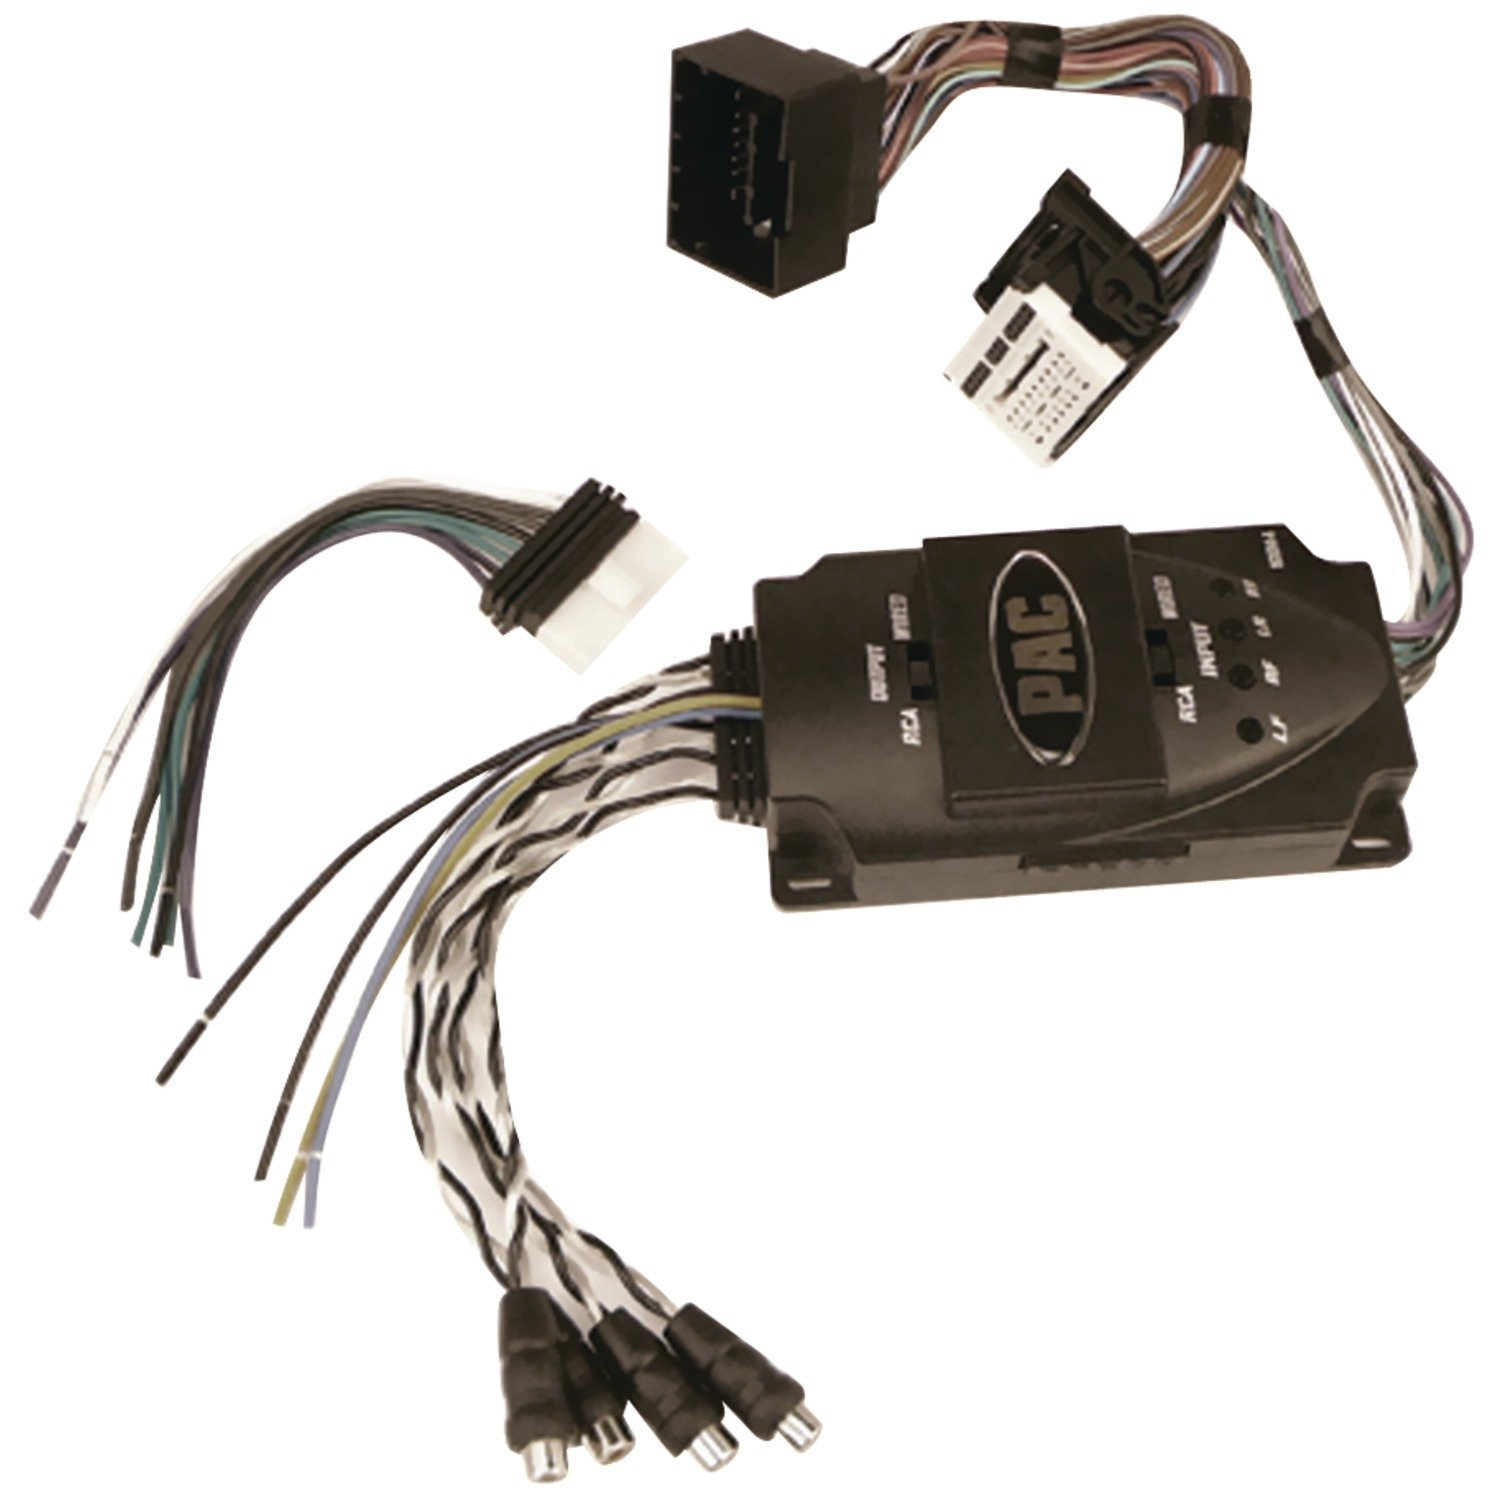 Amazon.com: PAC AA-GM44 Amplifier Integration Interface for Select 2010 and  Up GM Vehicles: PAC: Car Electronics